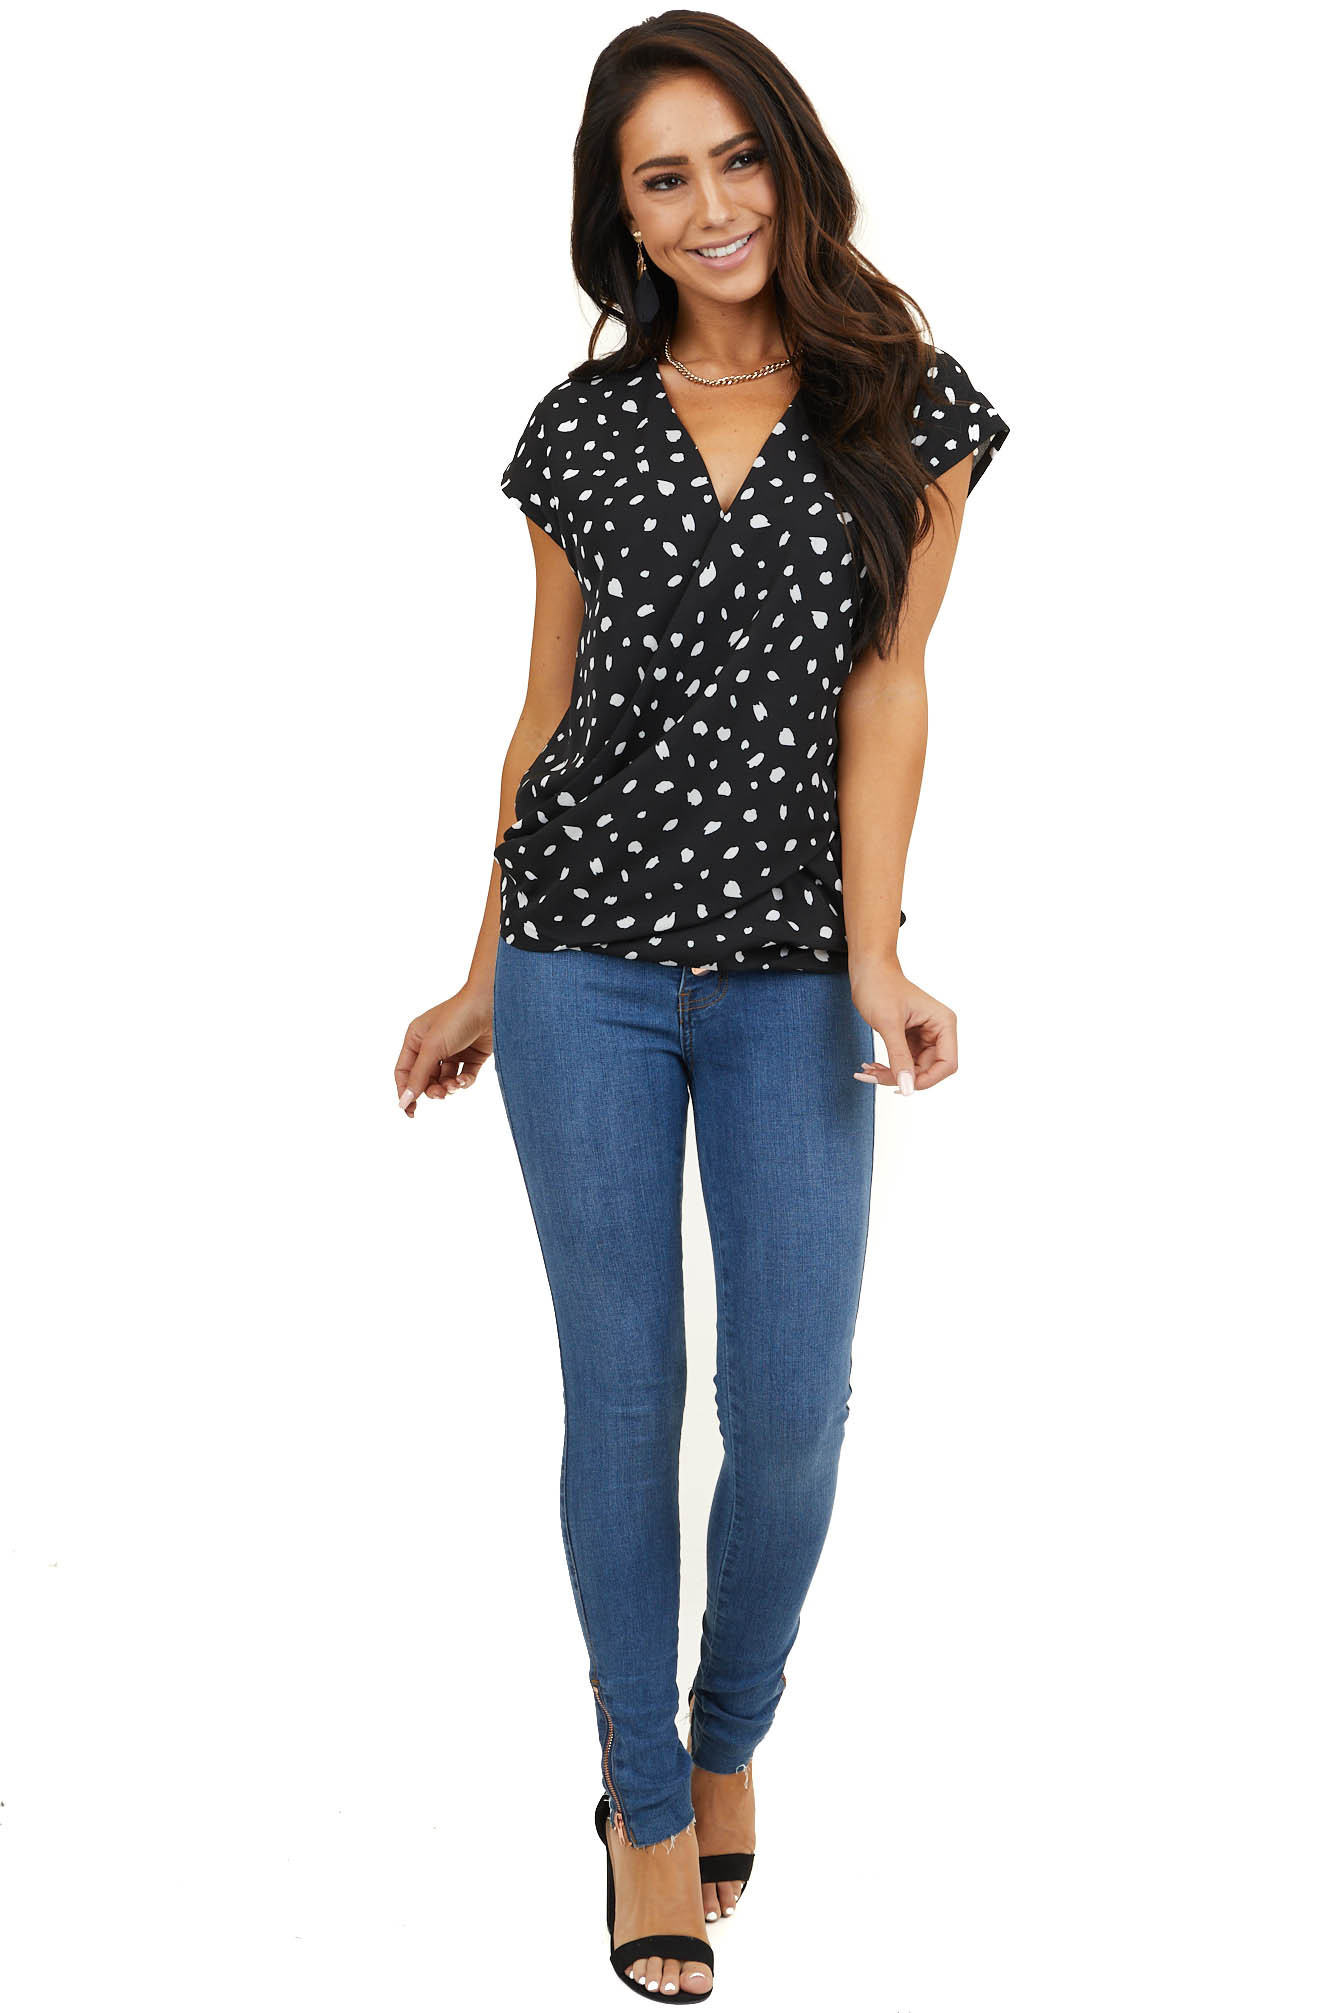 Black and White Patterned Surplice Top with Short Sleeves